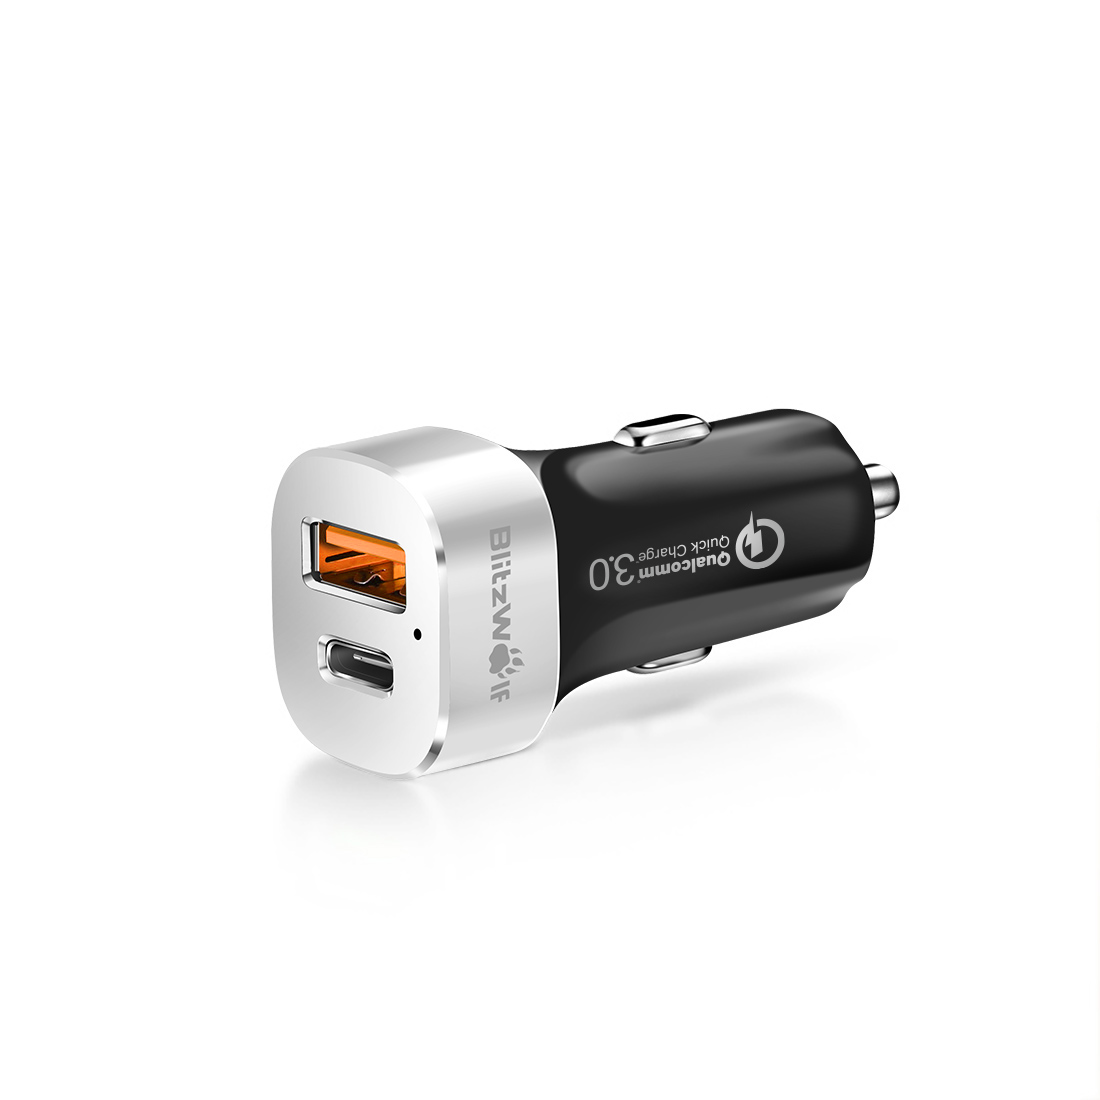 33W 2-Ports USB Car Charger